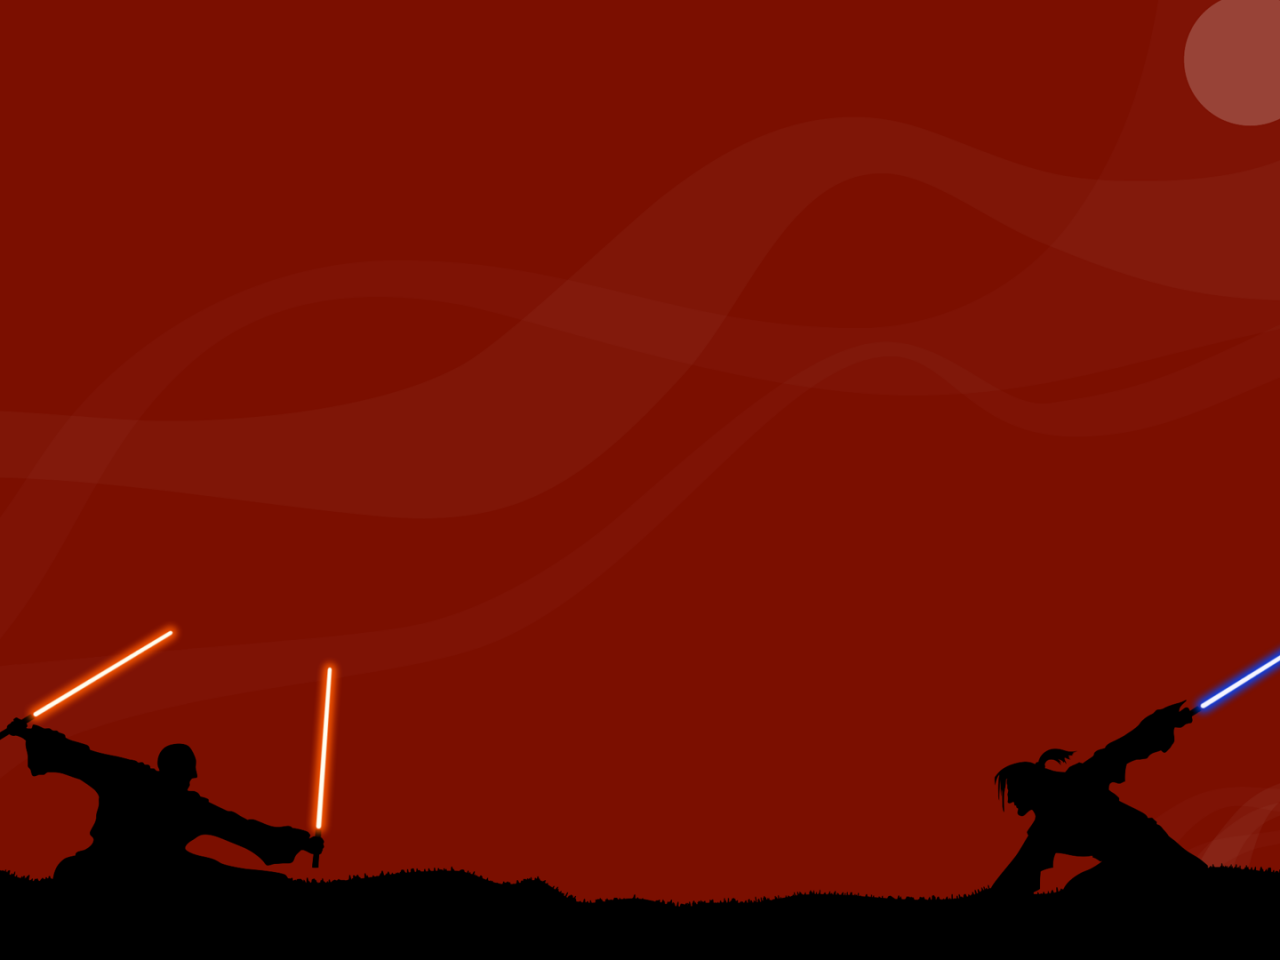 Jedi Vs Sith Wallpaper High Definition High Resolution Hd Wallpapers